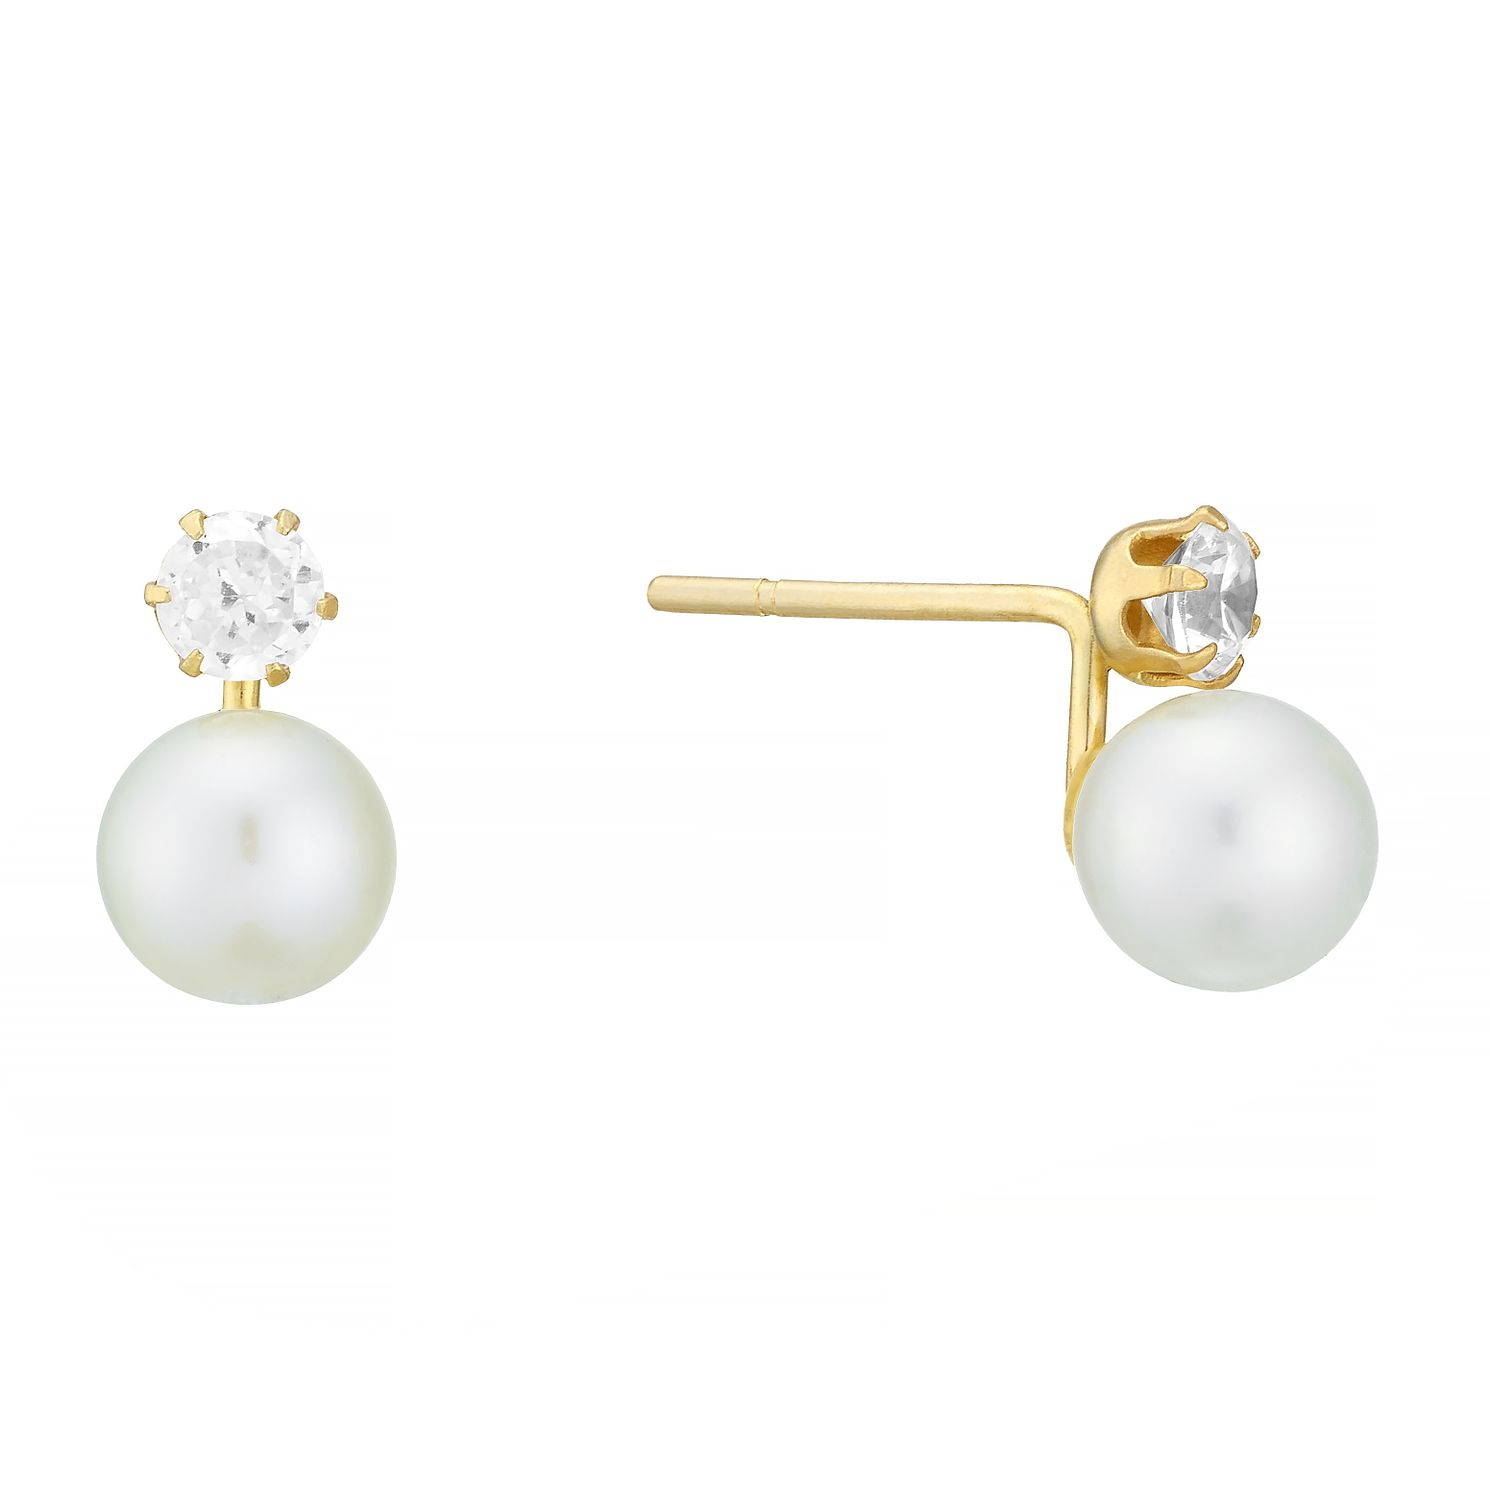 9ct Gold Freshwater Pearl & Cubic Zirconia Stud Earrings - Product number 3916634